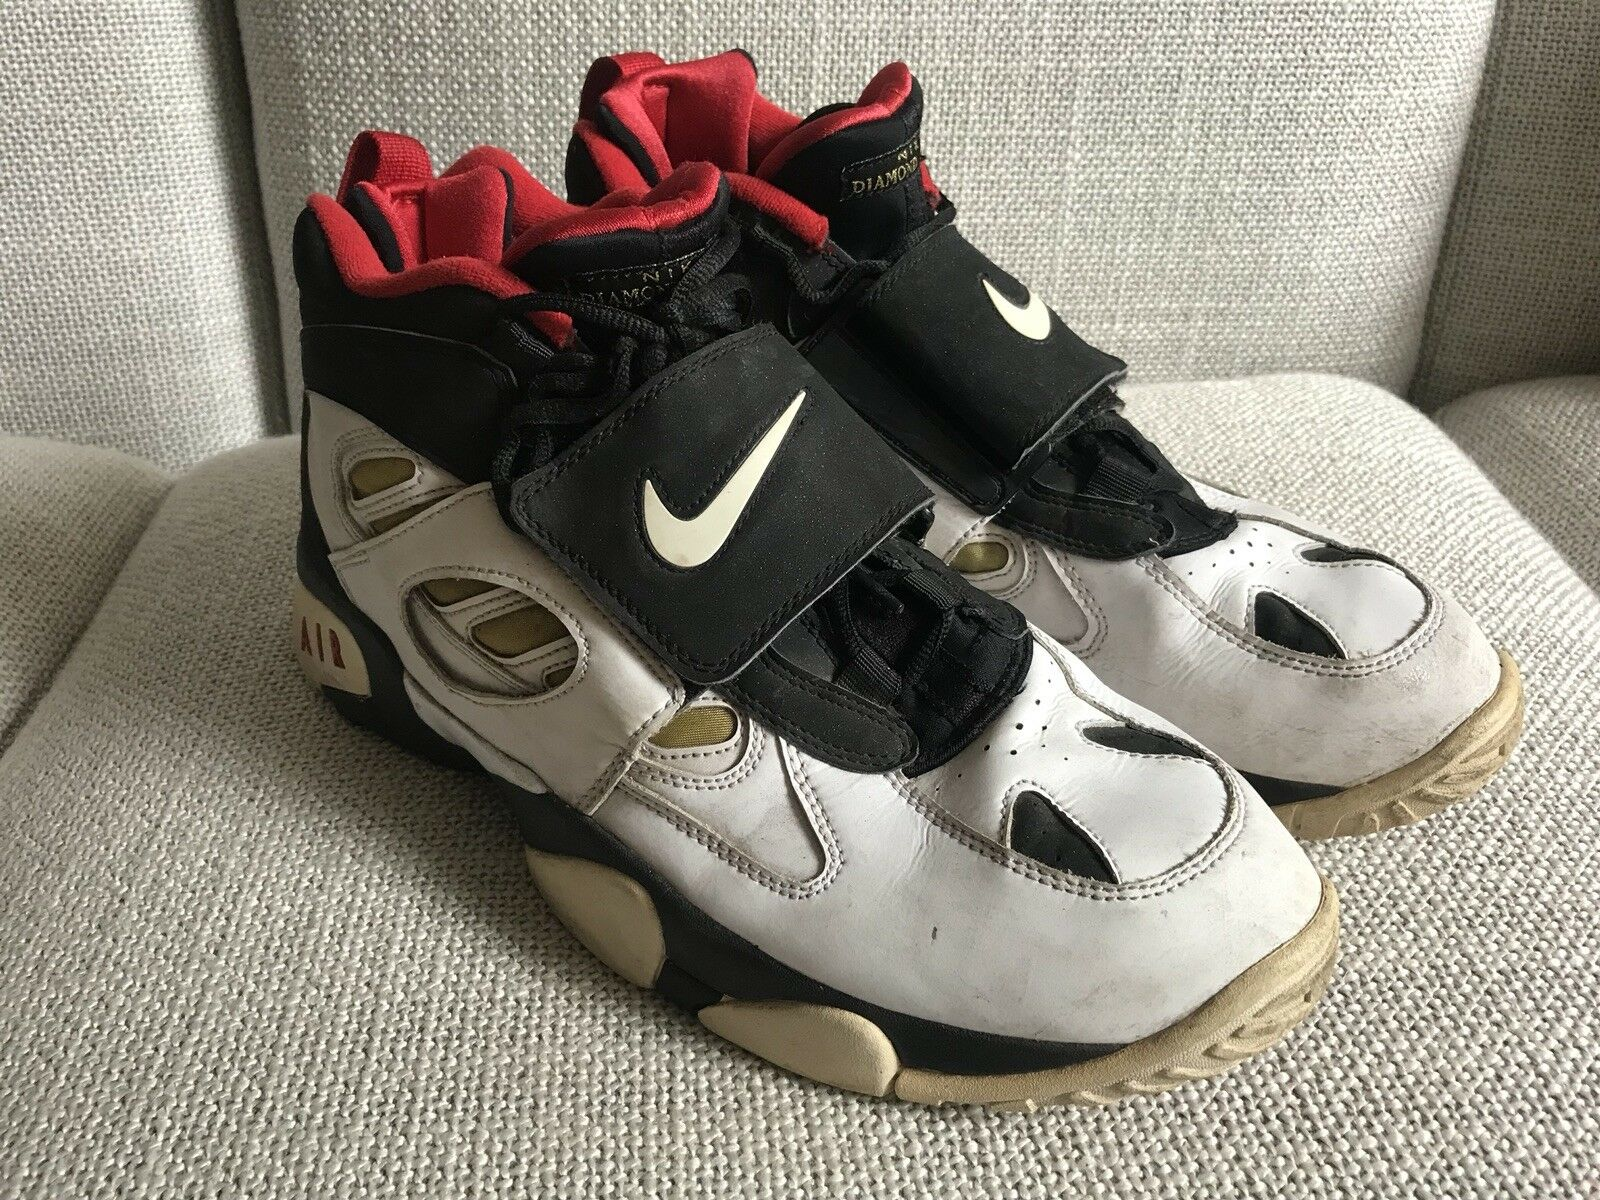 best website 99375 797ae Nike Air Diamond Turf II 2 2 2 Sz 13 487658-070 White Black ...